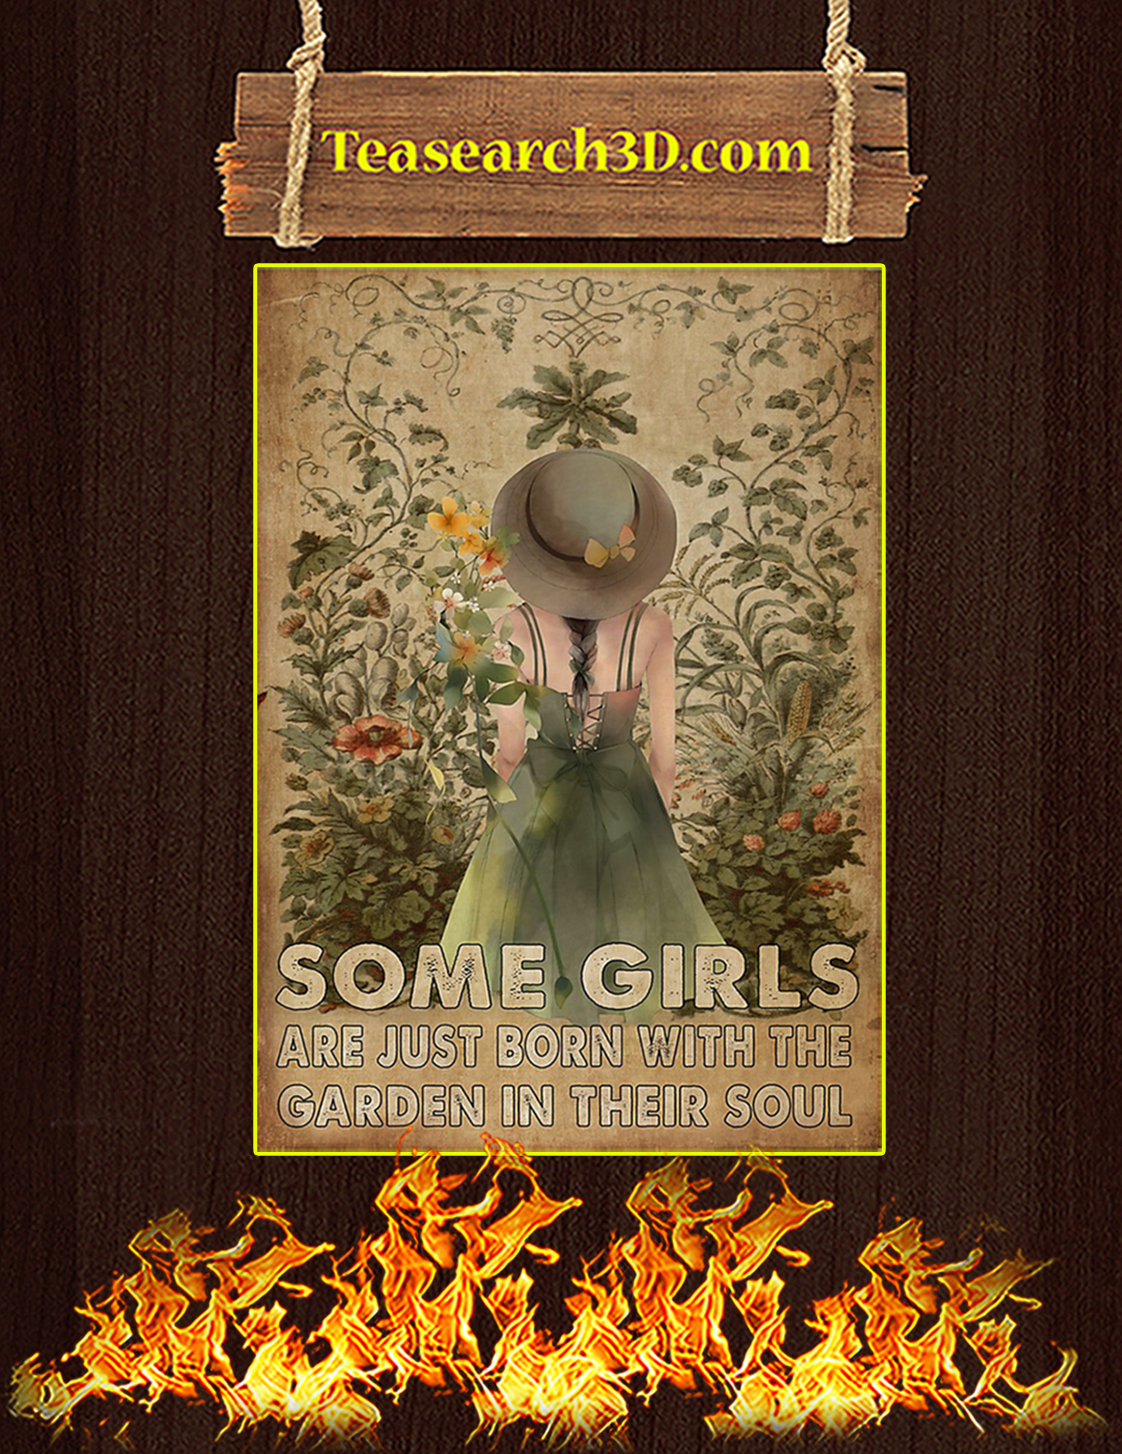 Some girls are just born with garden in their soul poster A3